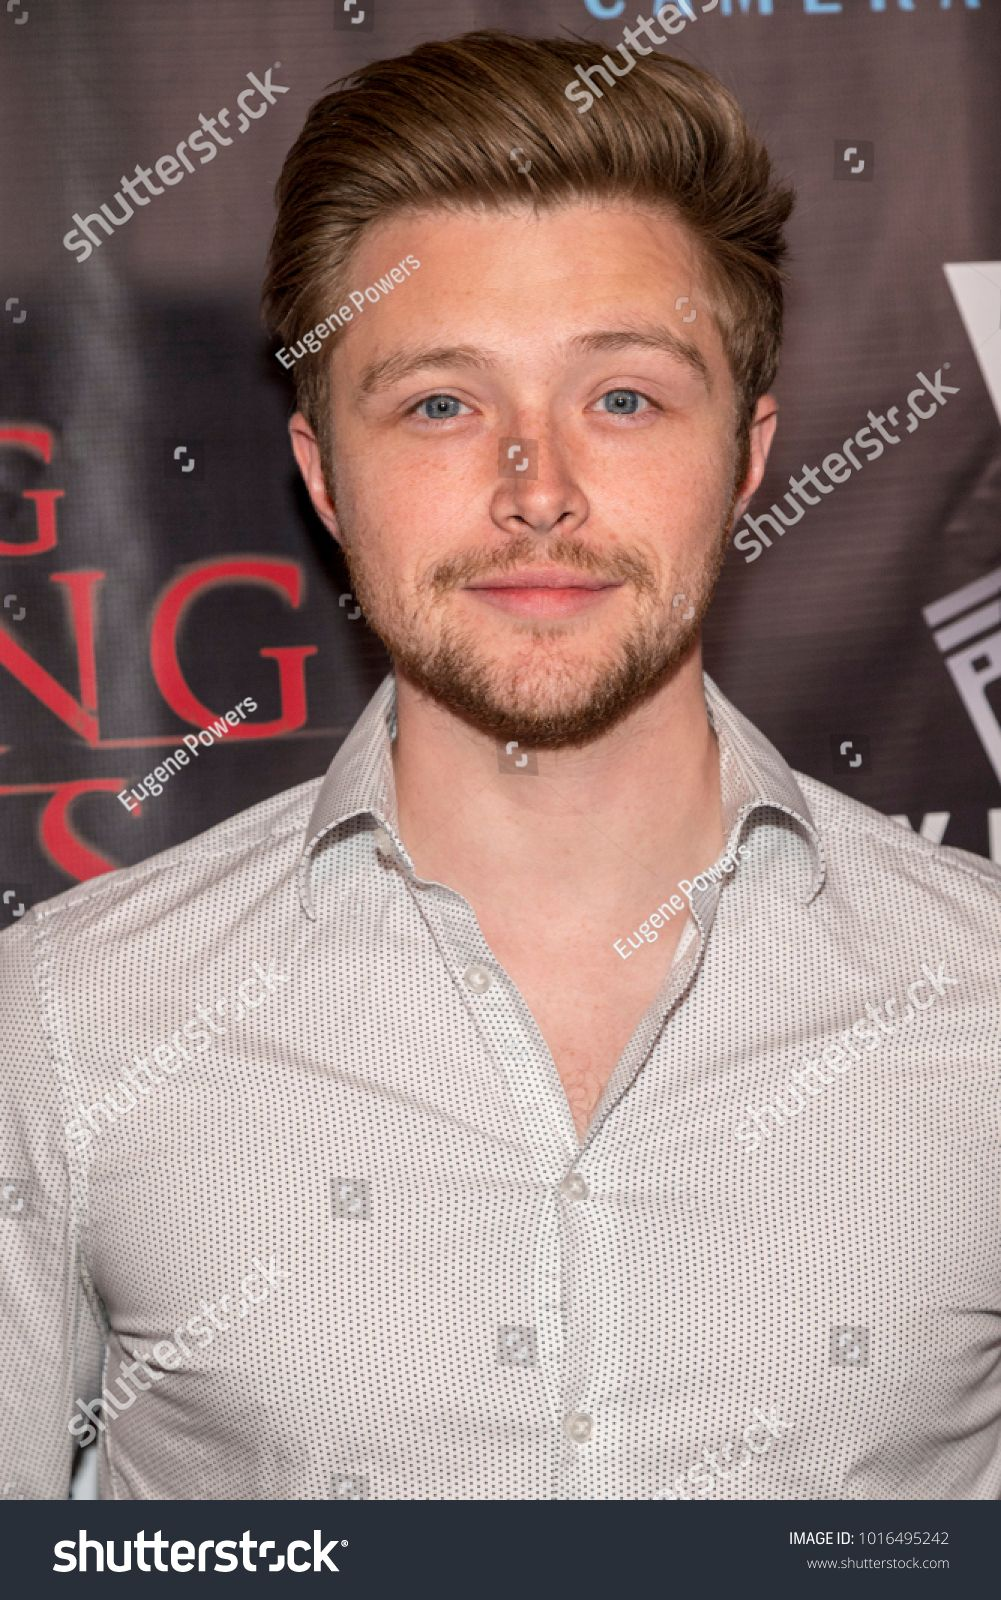 Sterling Knight Attends Living Among Us Los Angeles Premiere At Laemmle S Ahrya Fine Arts Theatre L In 2020 Photo Editing Stock Photos Royalty Free Stock Photos